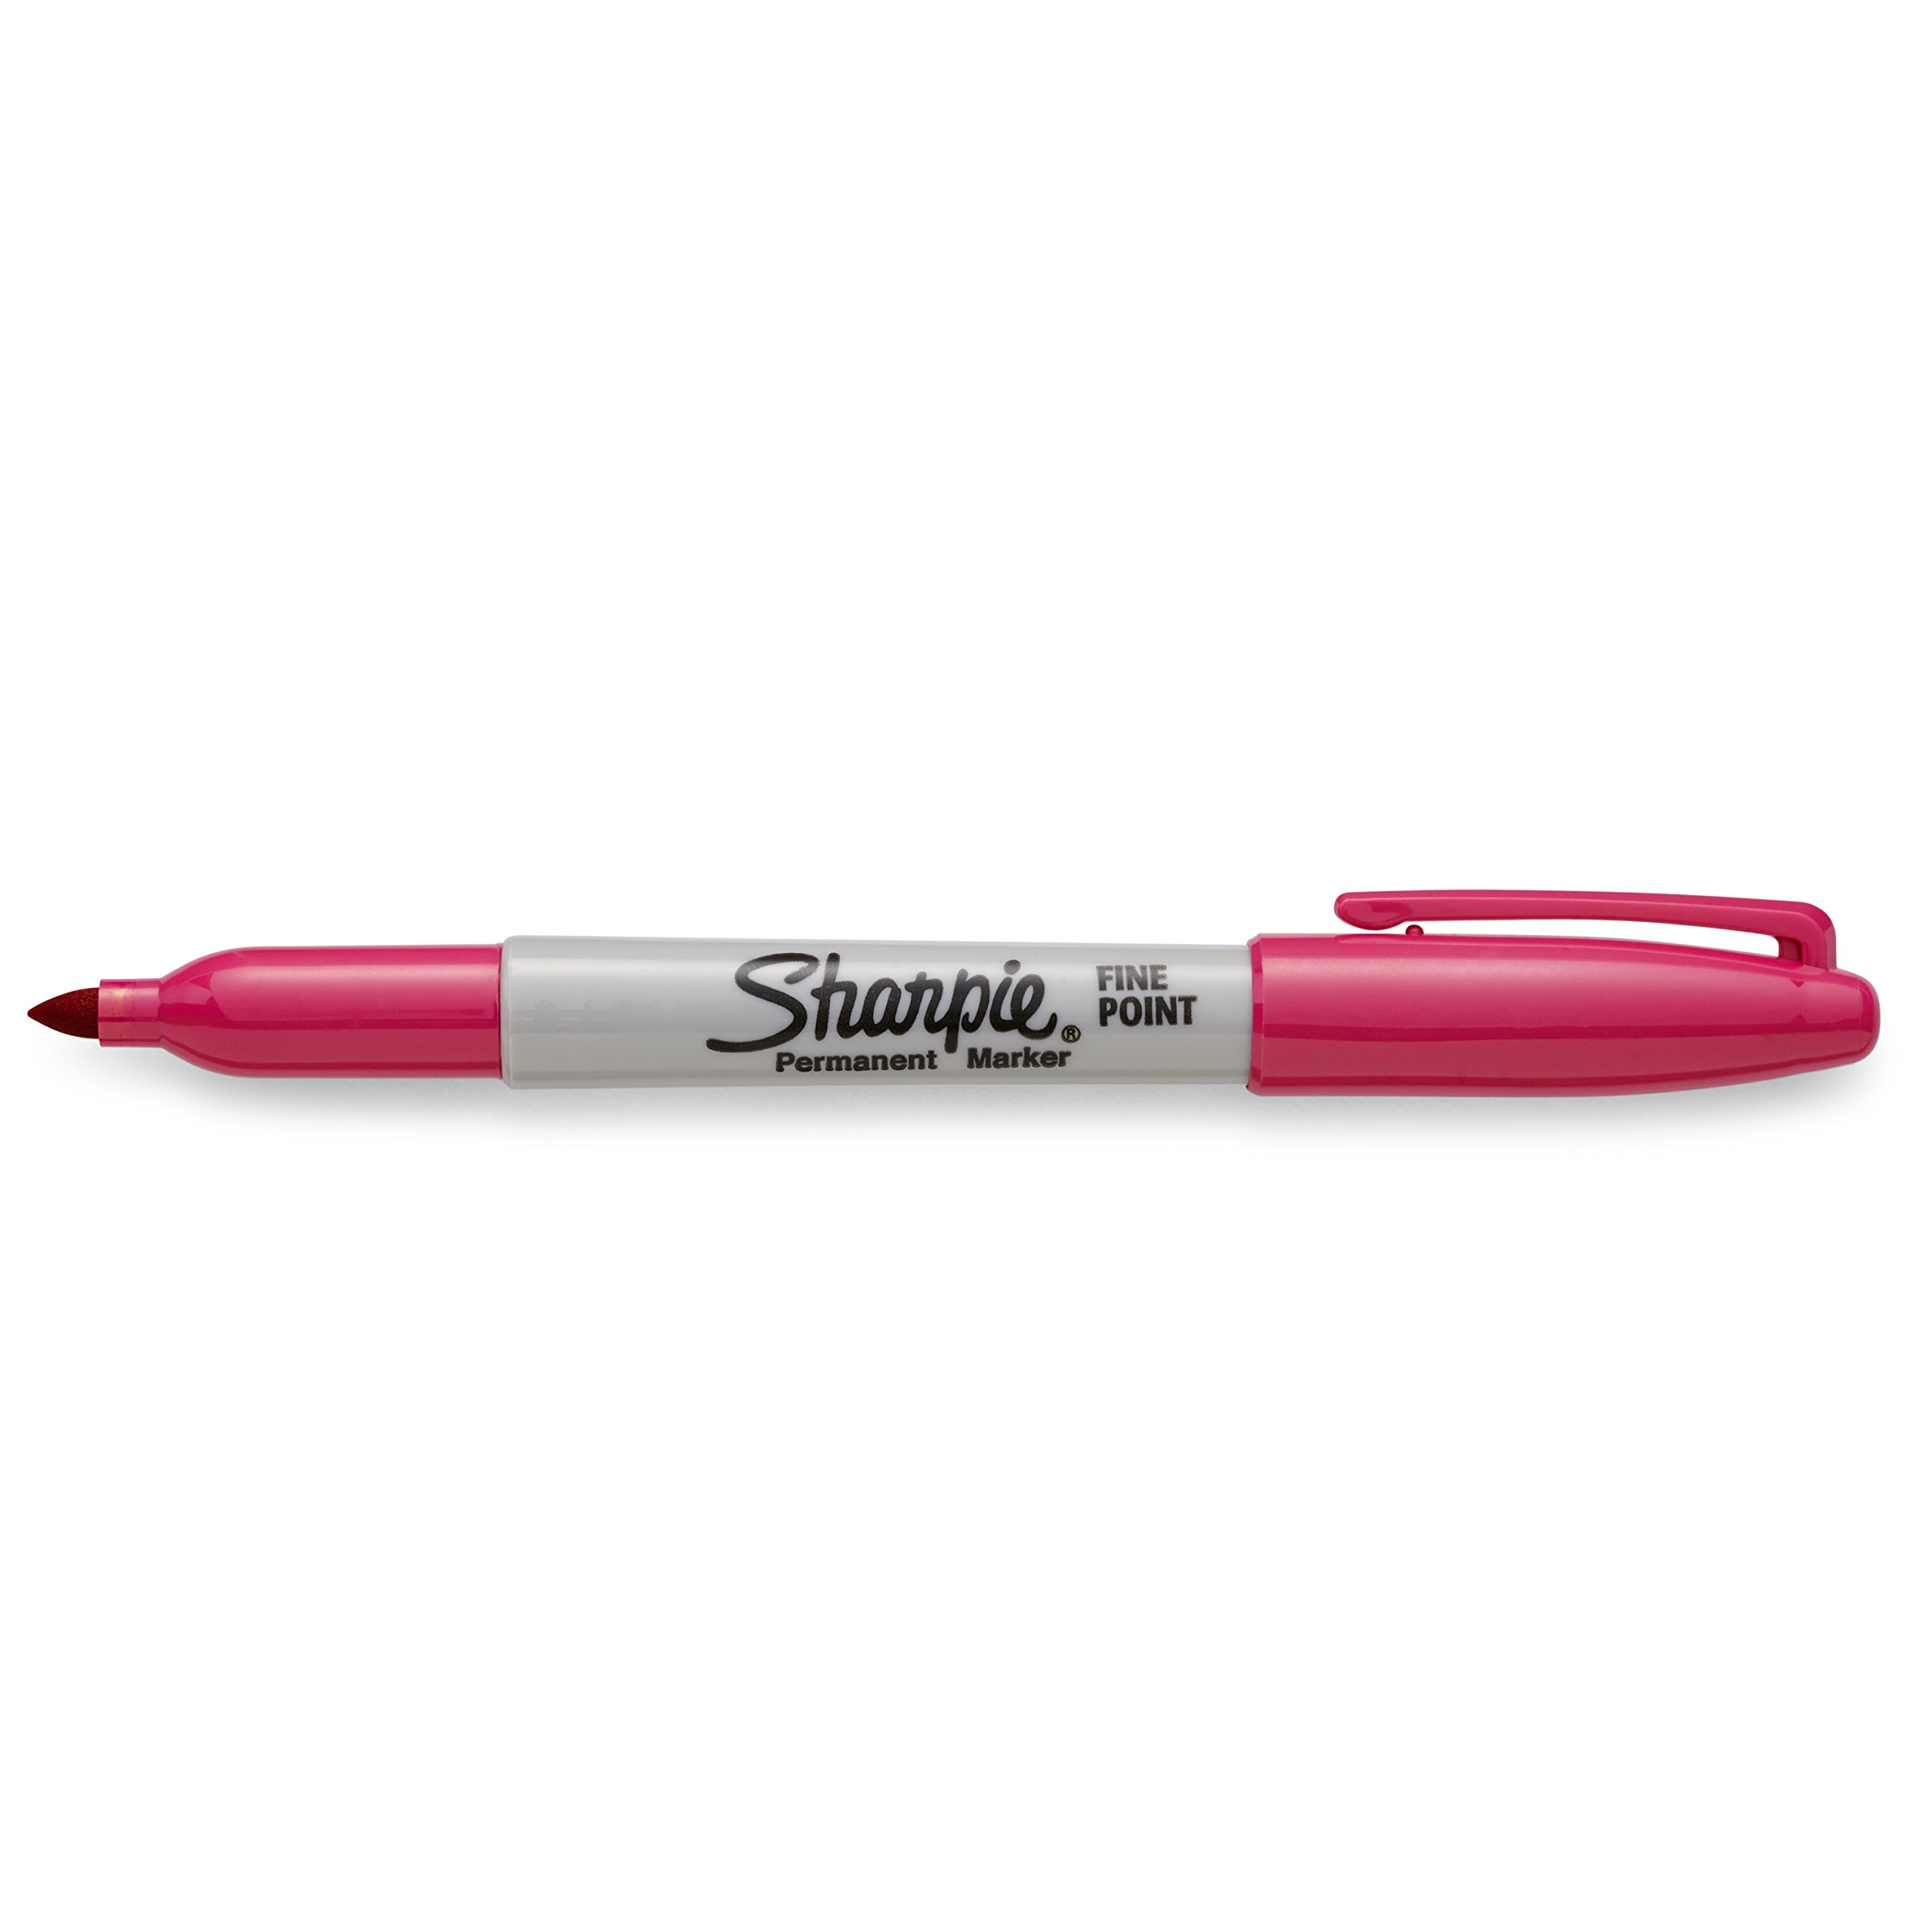 Sharpie Color Burst Permanent Markers, Fine Point, Assorted Colors, 24 Count by Sharpie (Image #10)